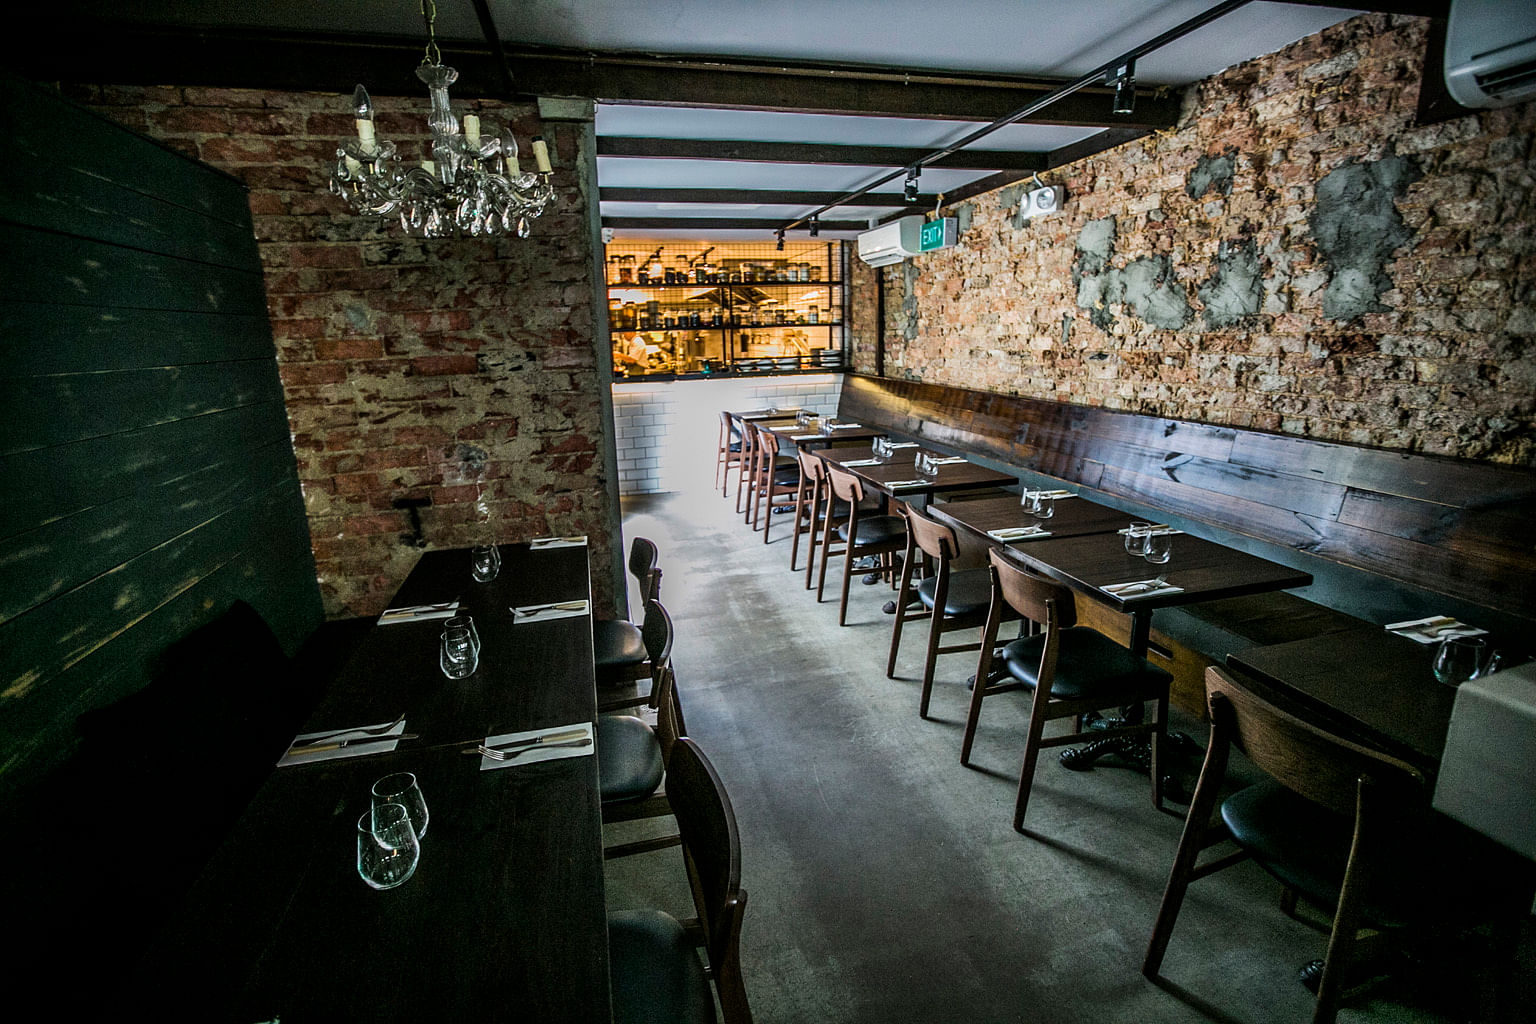 The Lo & Behold Group said the reopening of its upmarket Western restaurant The Black Swan (left) in Cecil Street will be put on hold because the Central Business District crowd will continue to remain thin for another few months as most people will